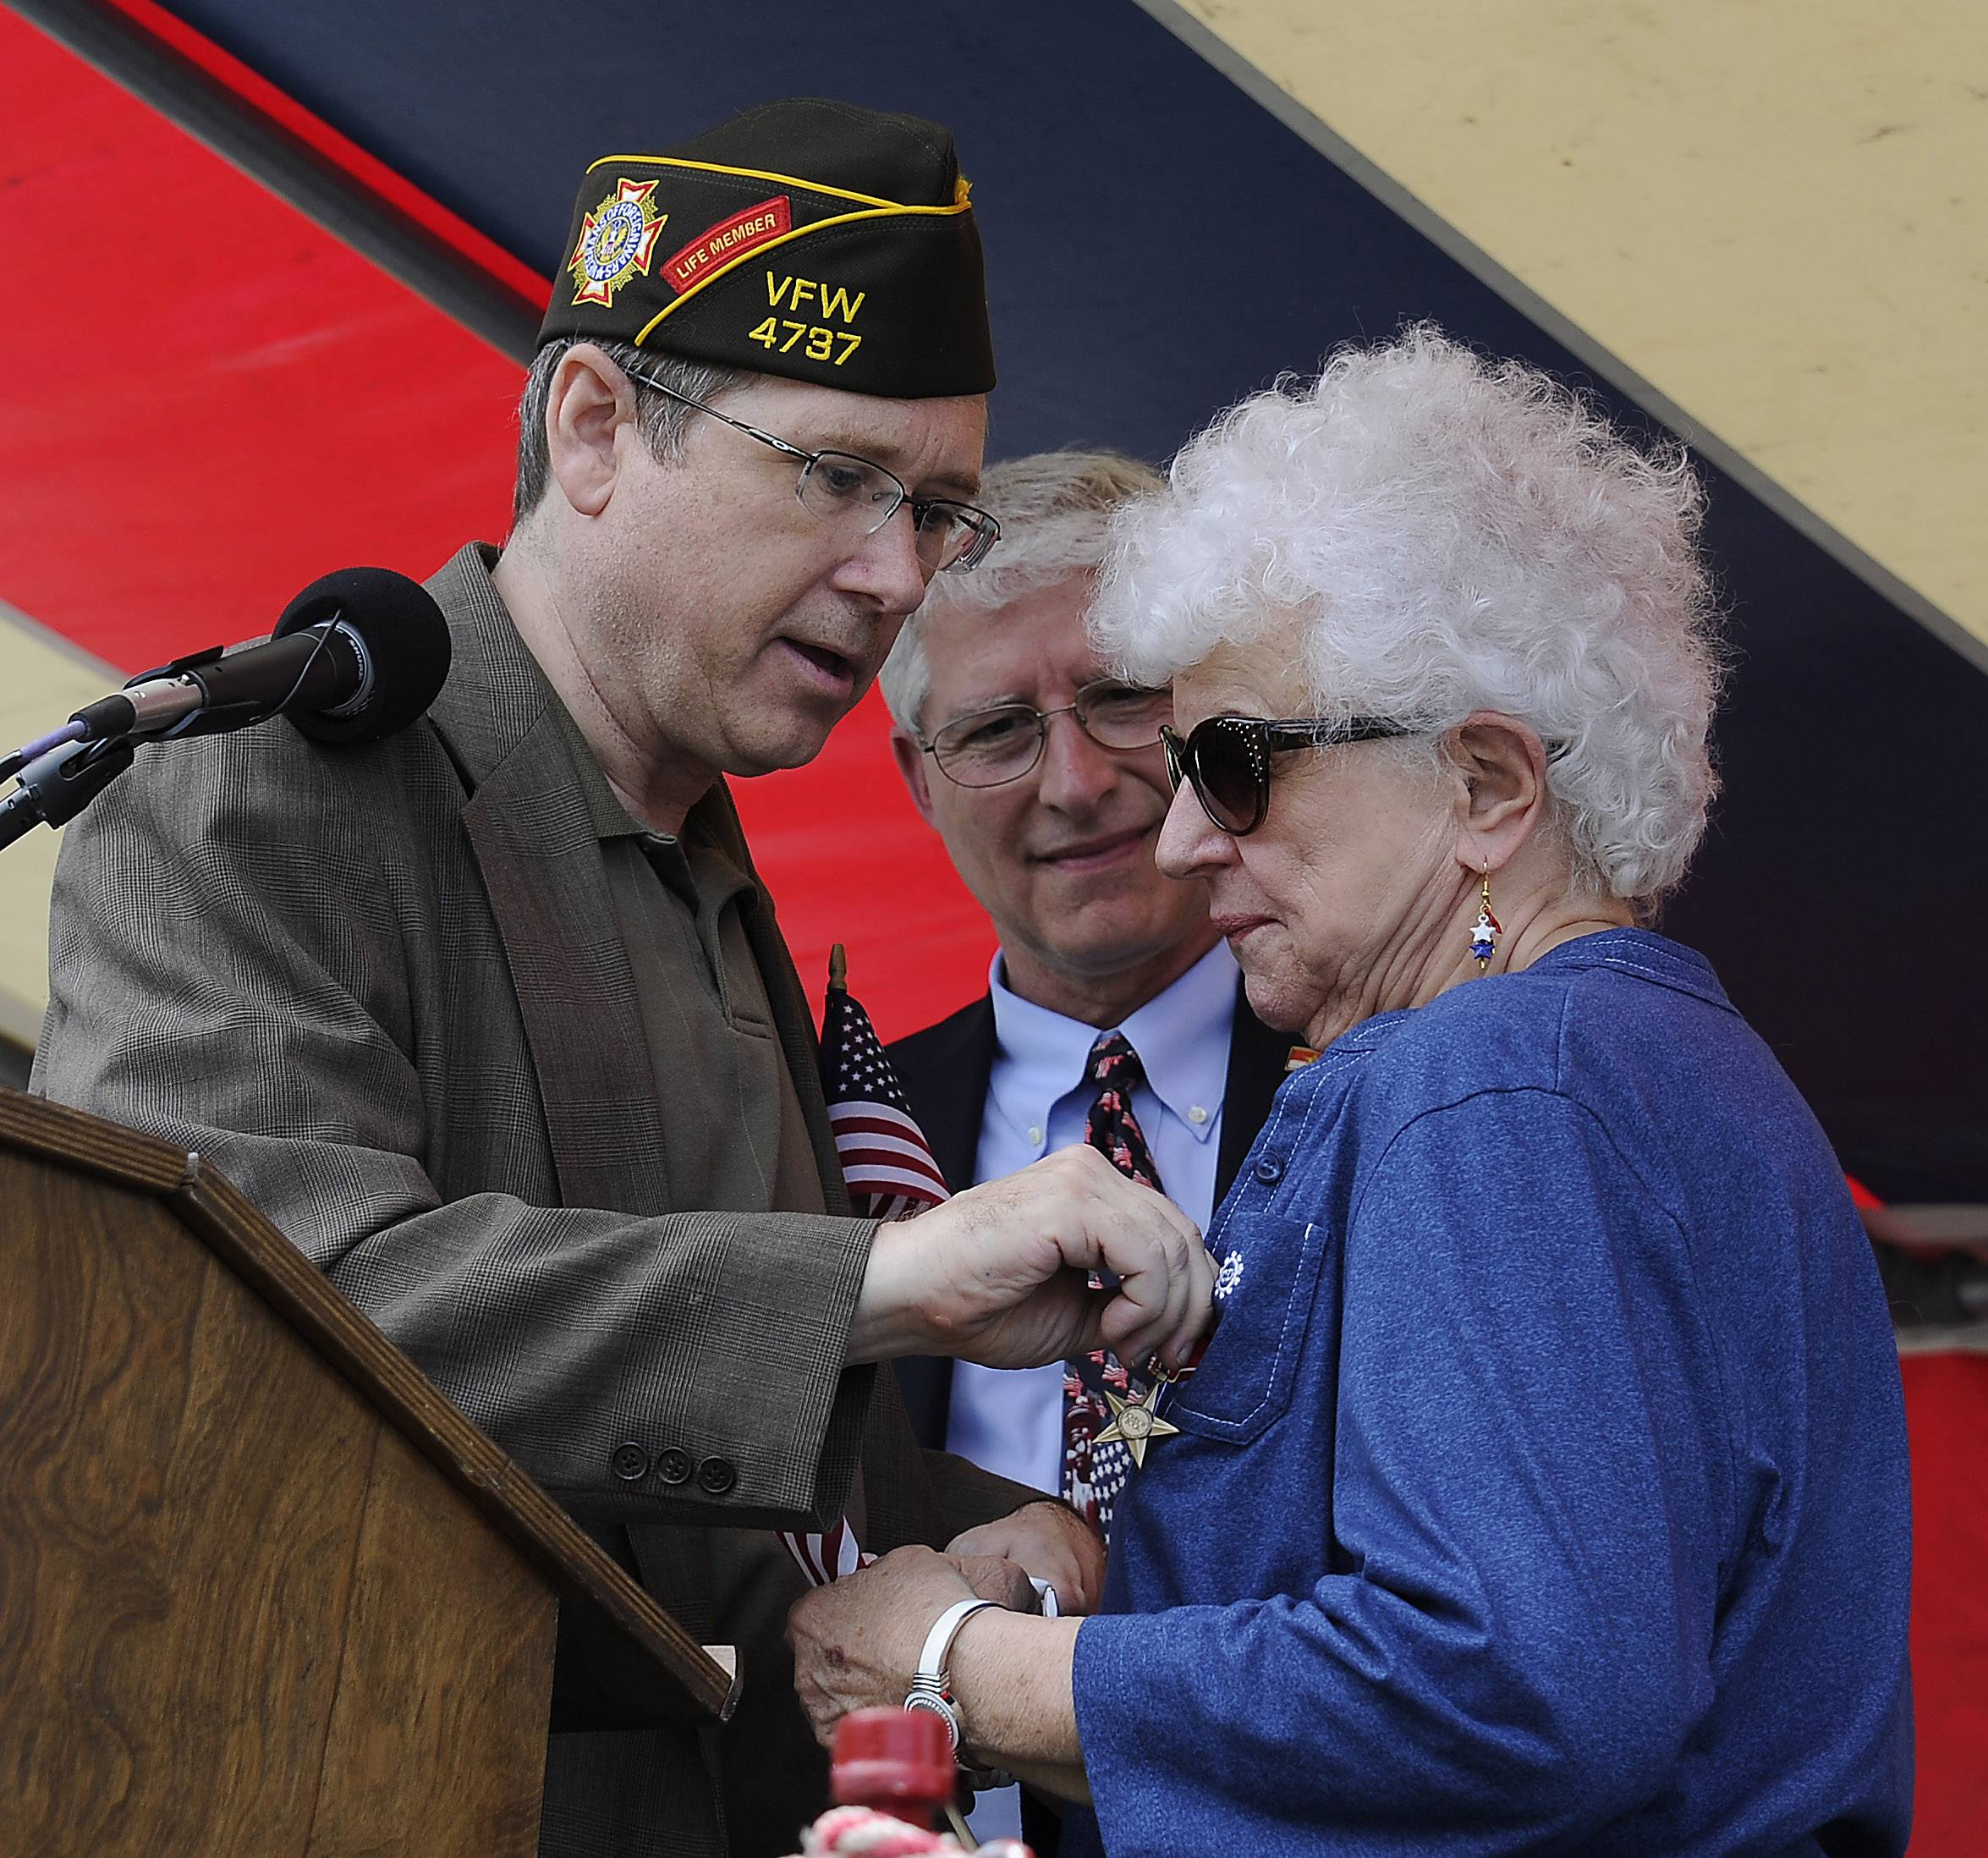 Veteran's Bronze Star presented in Arlington Hts. ceremony